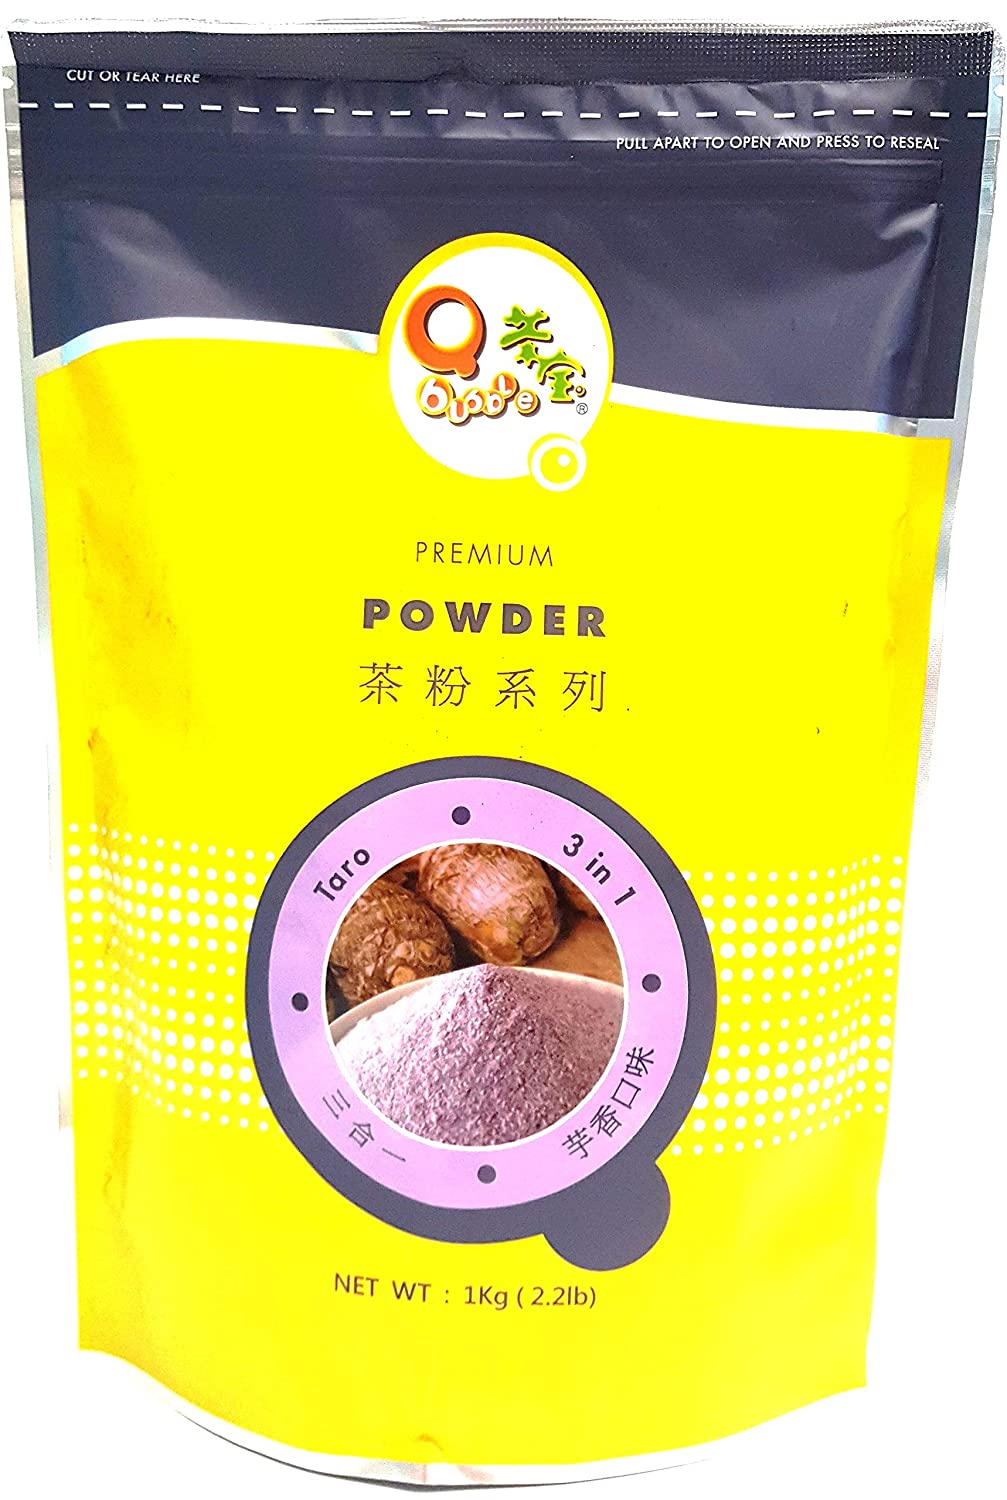 Qbubble Tea Taro Powder, 2 2 Pound